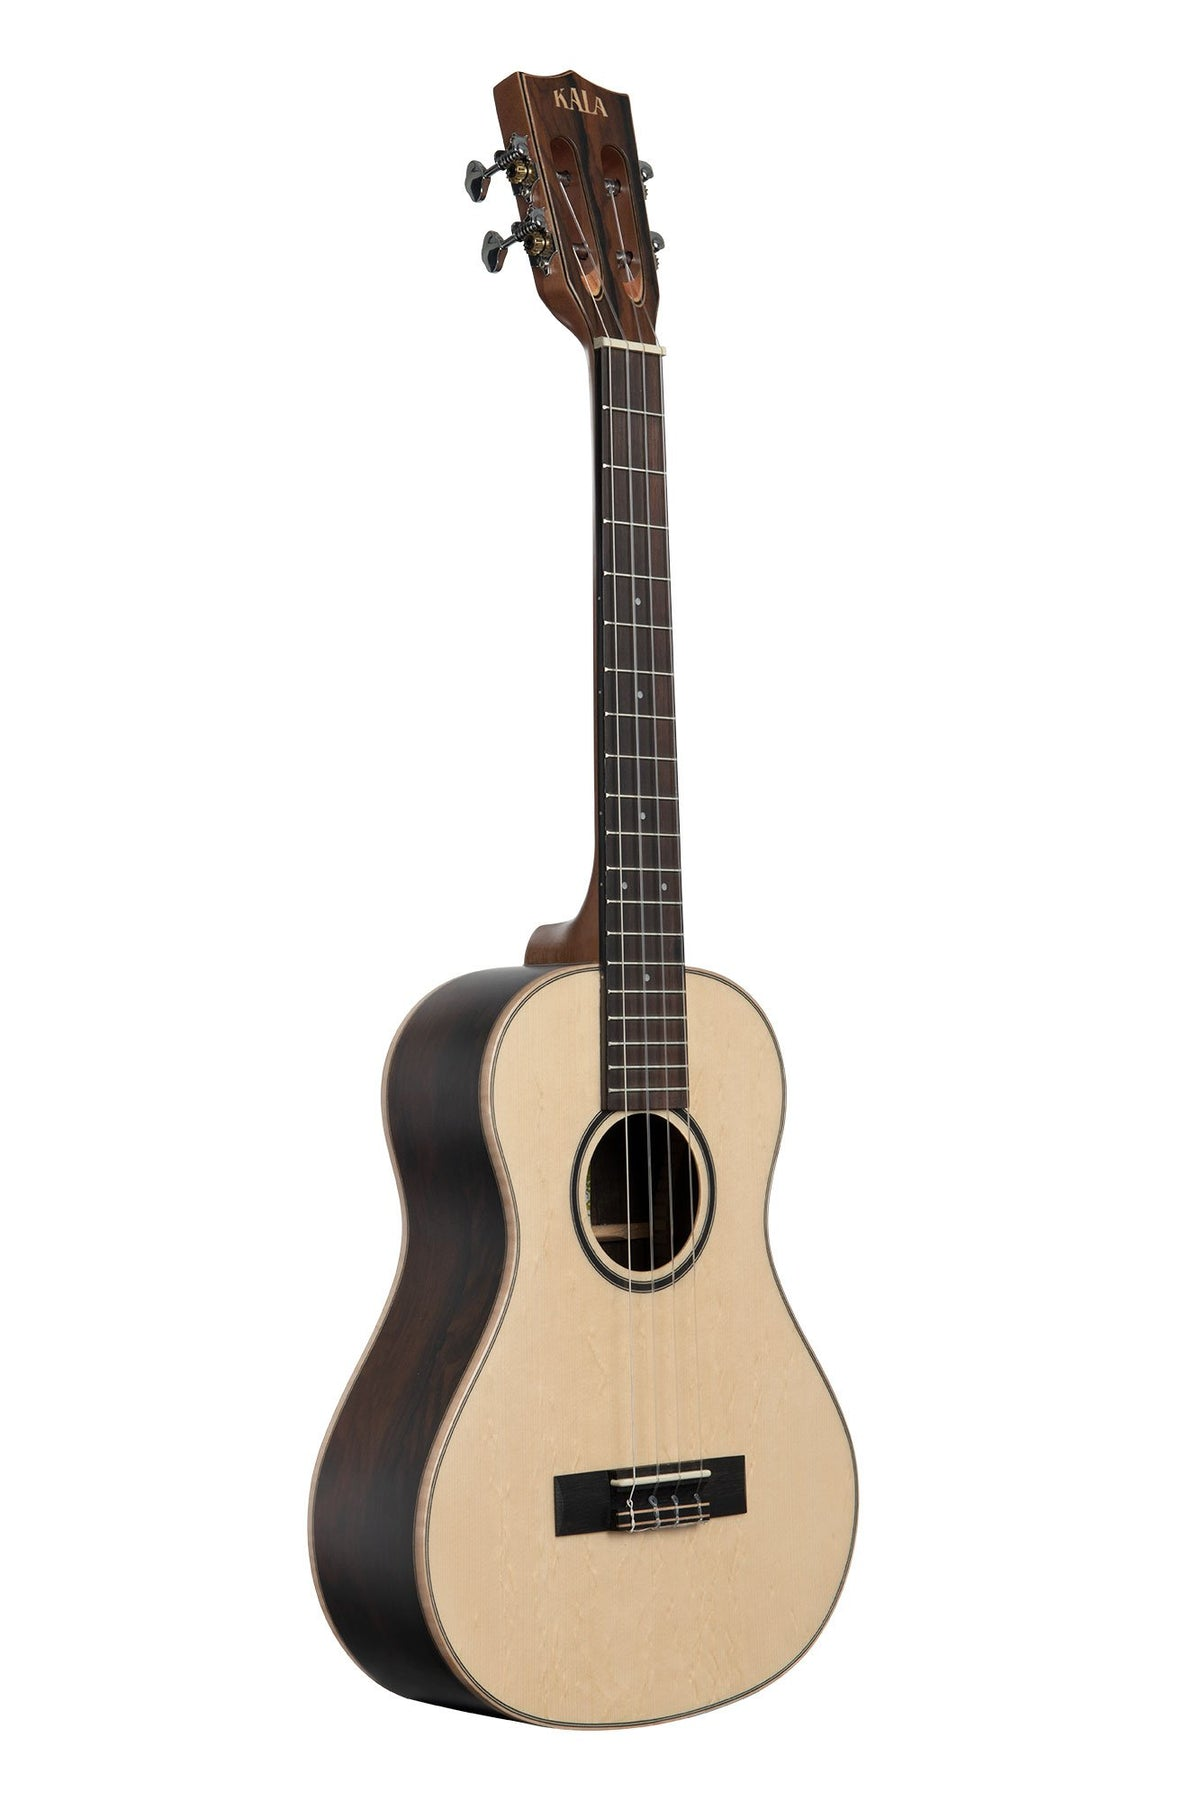 KA-ASZCT-ST Kala Super Tenor Solid Spruce Top Zircote back and Sides.